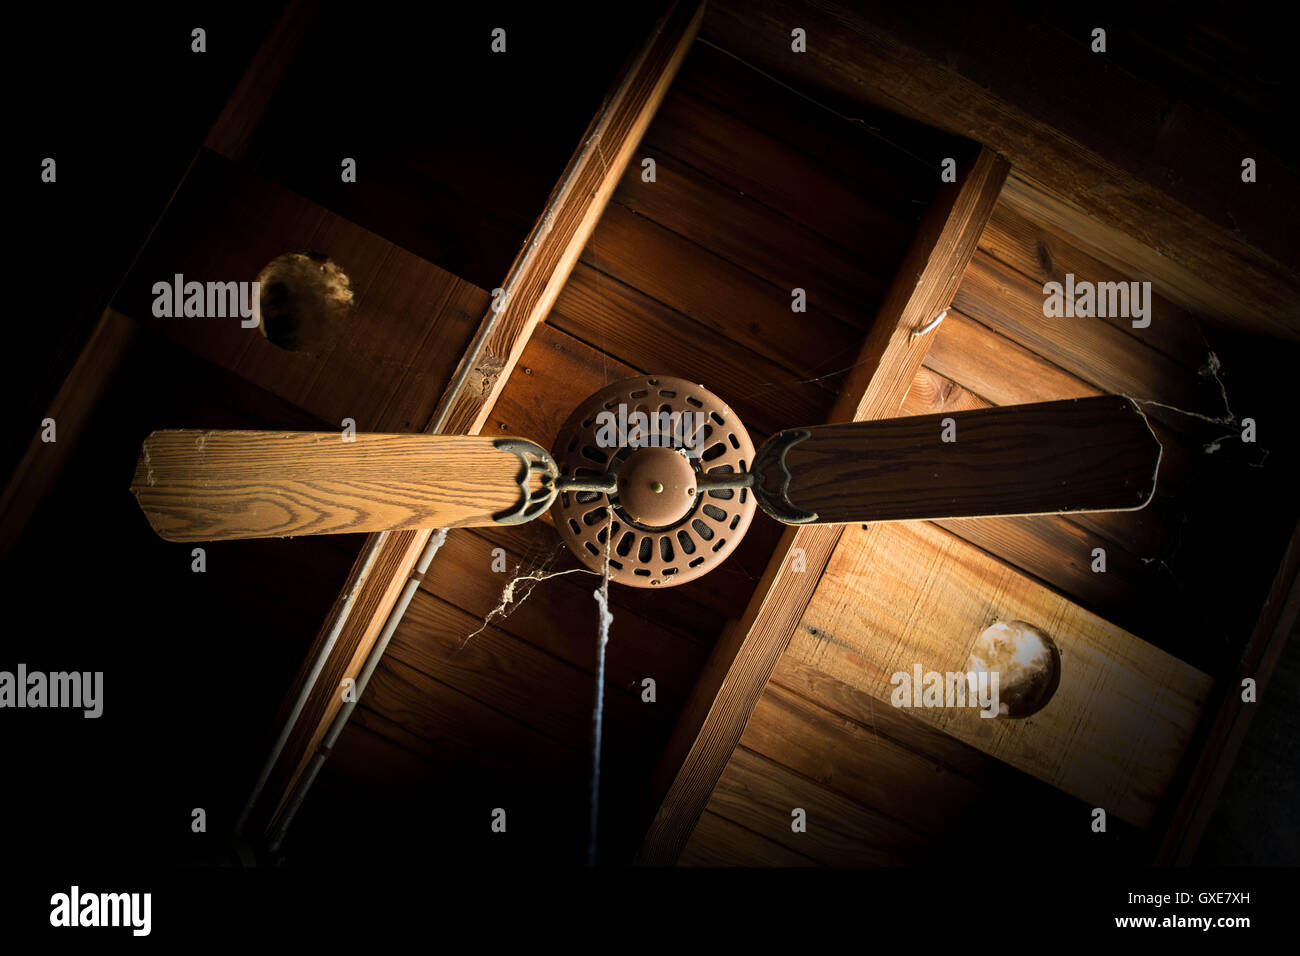 Ceiling fan history stock photos ceiling fan history stock images ceiling fan of an abandoned building stock image aloadofball Images